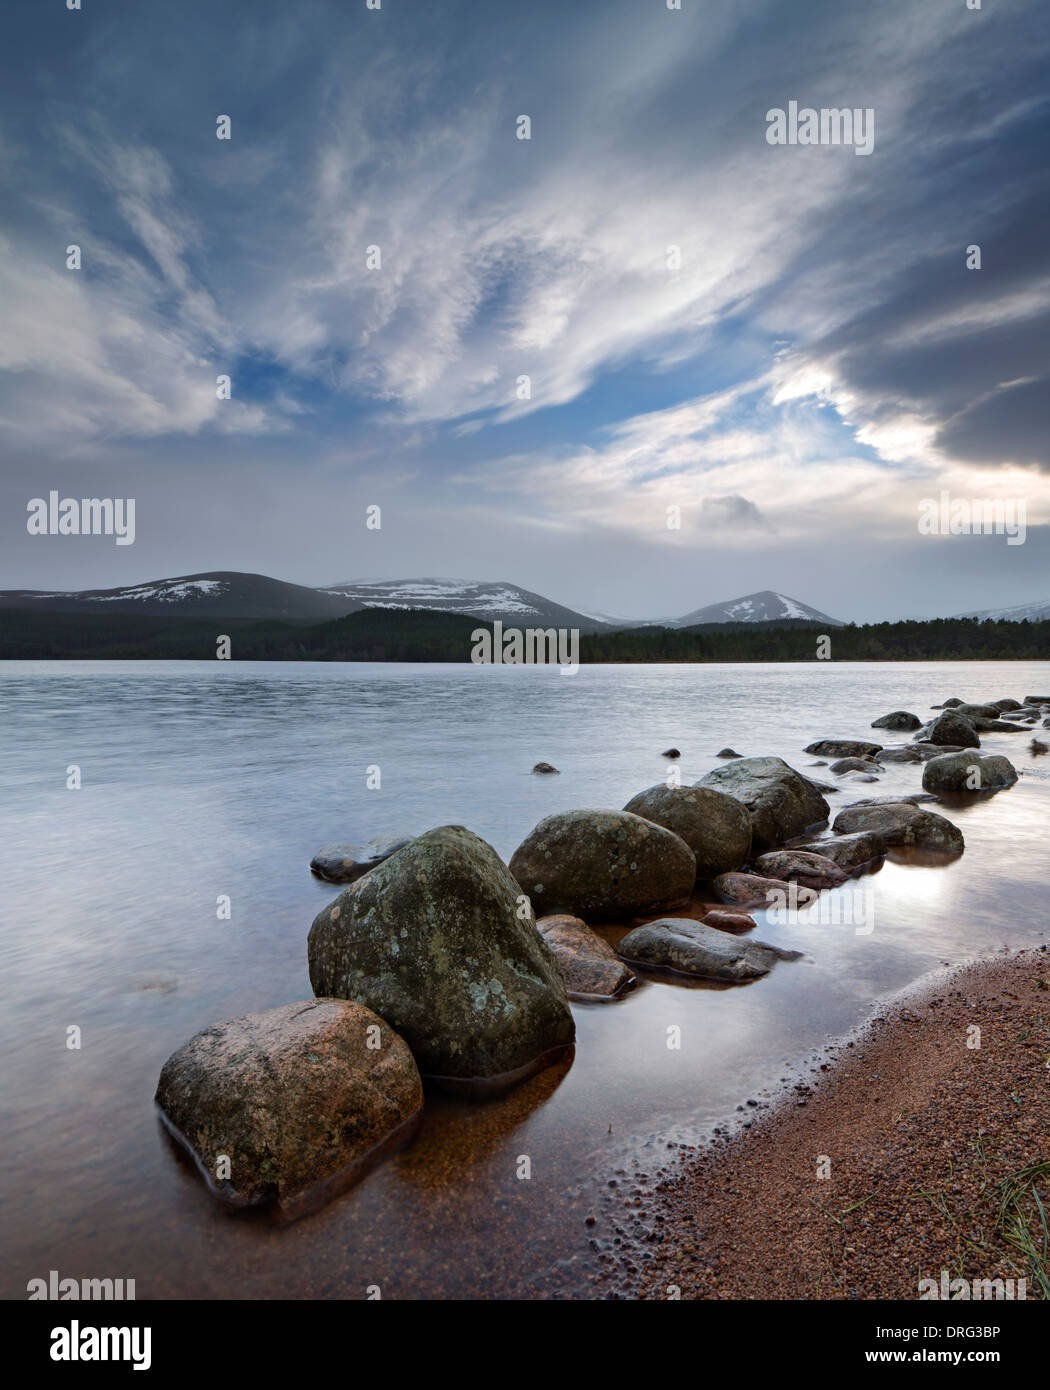 Dawn breaking over Loch Morlich and the Cairngorms in Glenmore Scotland. - Stock Image